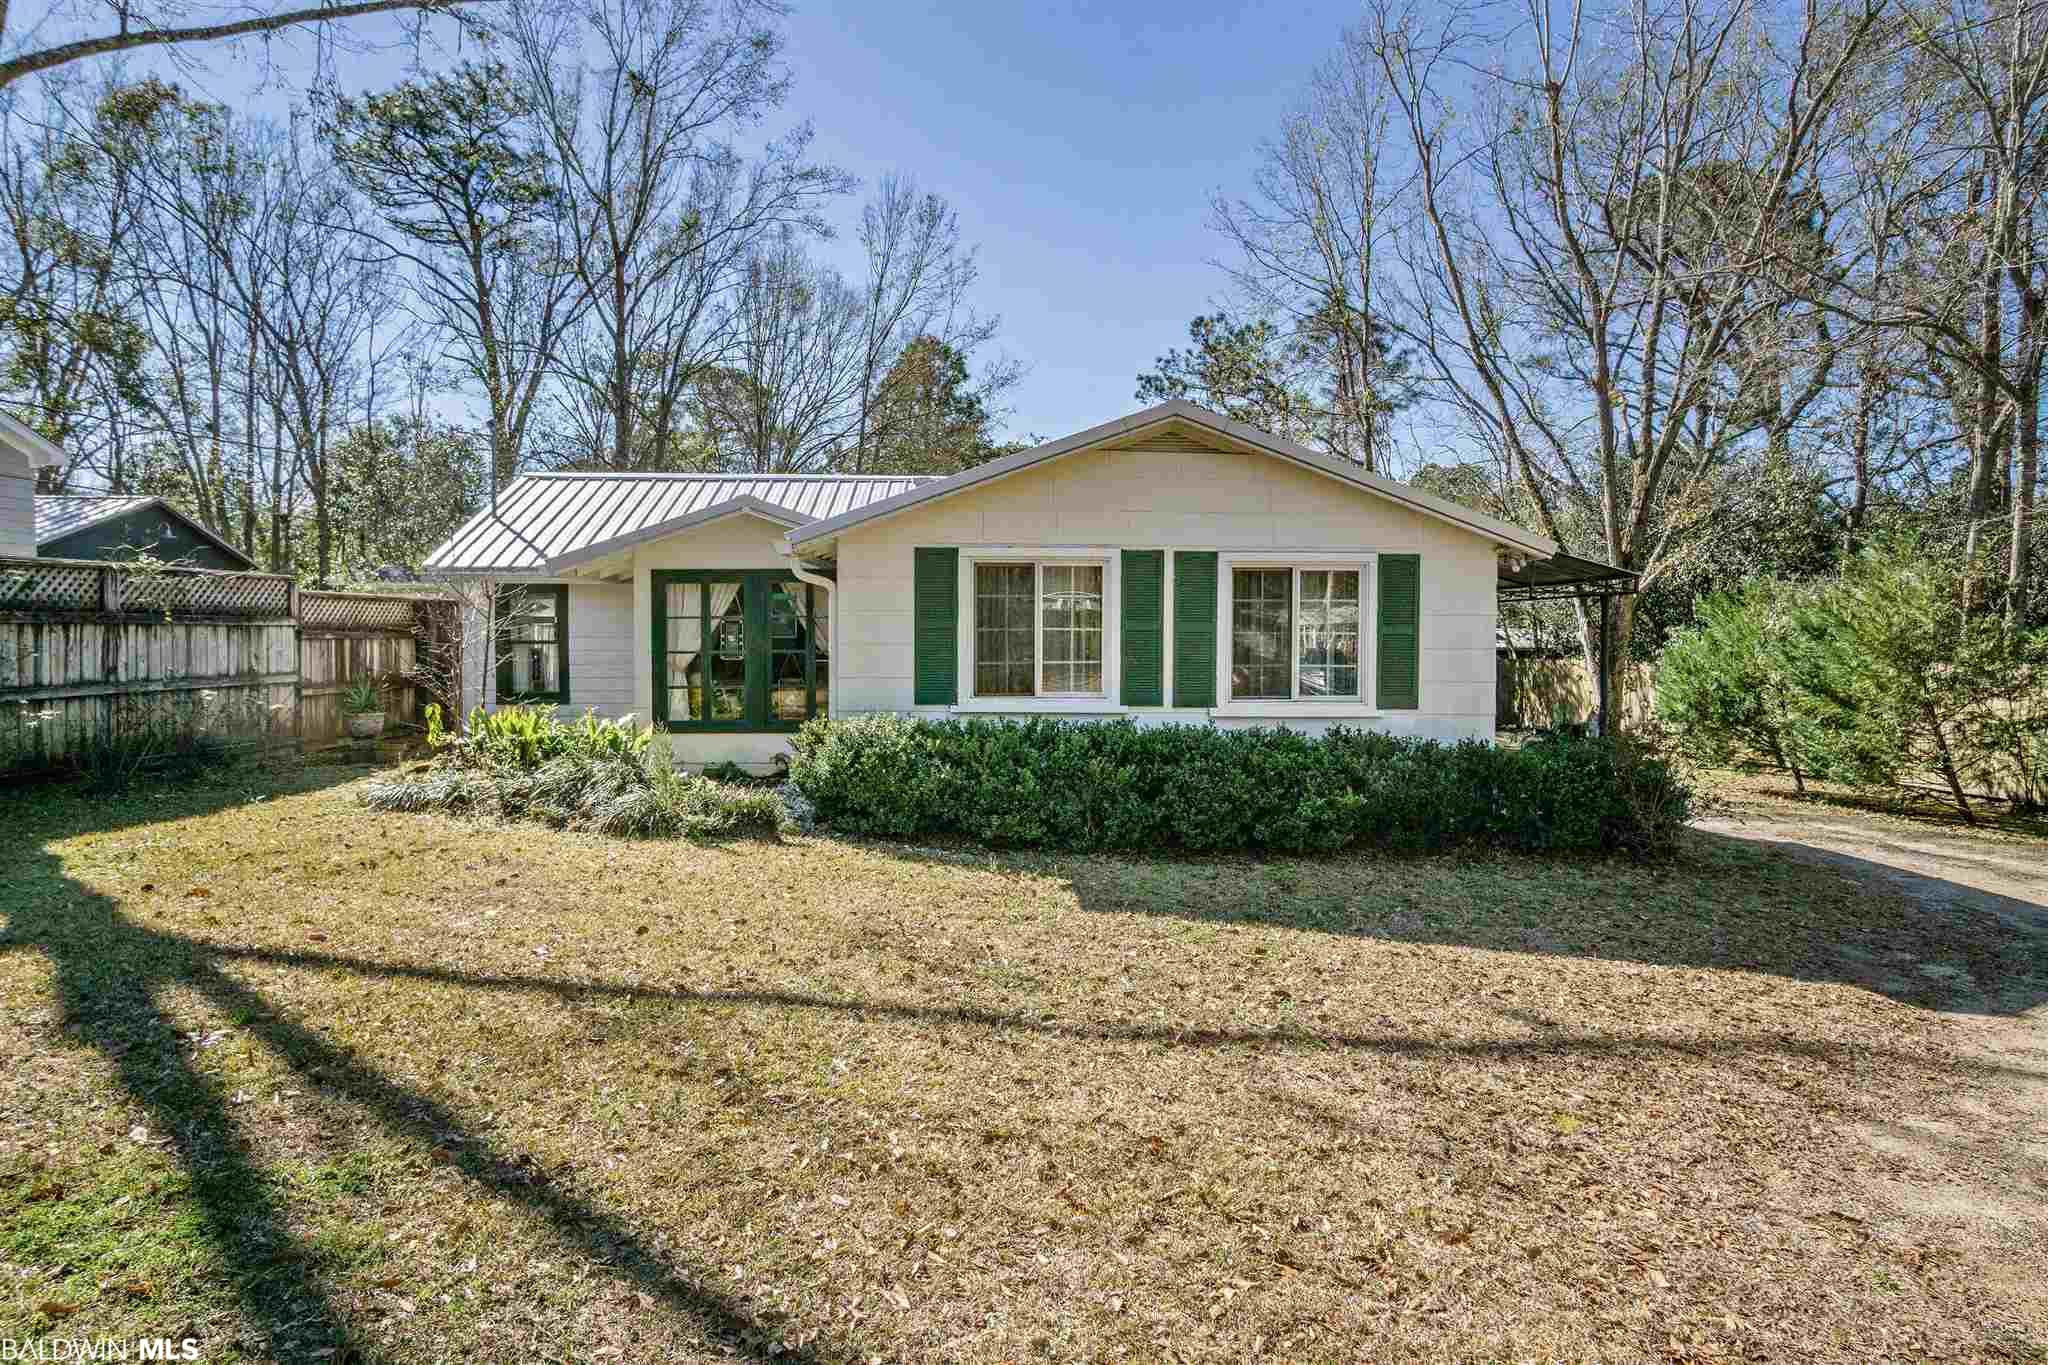 Step inside the most unique and quaint cottage in town and take a walk back to an earlier time in Fairhope.  Even though it is an older home it boasts new roof, recently replaced heat and air, tankless water heater, new sewage pipes to the street, new gutters and new refrigerator. The high ceilings show open beams through out.  Lots of privacy and larger lot give lots of possibilities.  Great location  with in walking distance to shopping, and restaurants.  Close to everything yet this lot offers privacy in a peaceful setting.   Seller motivated and NO HOA.